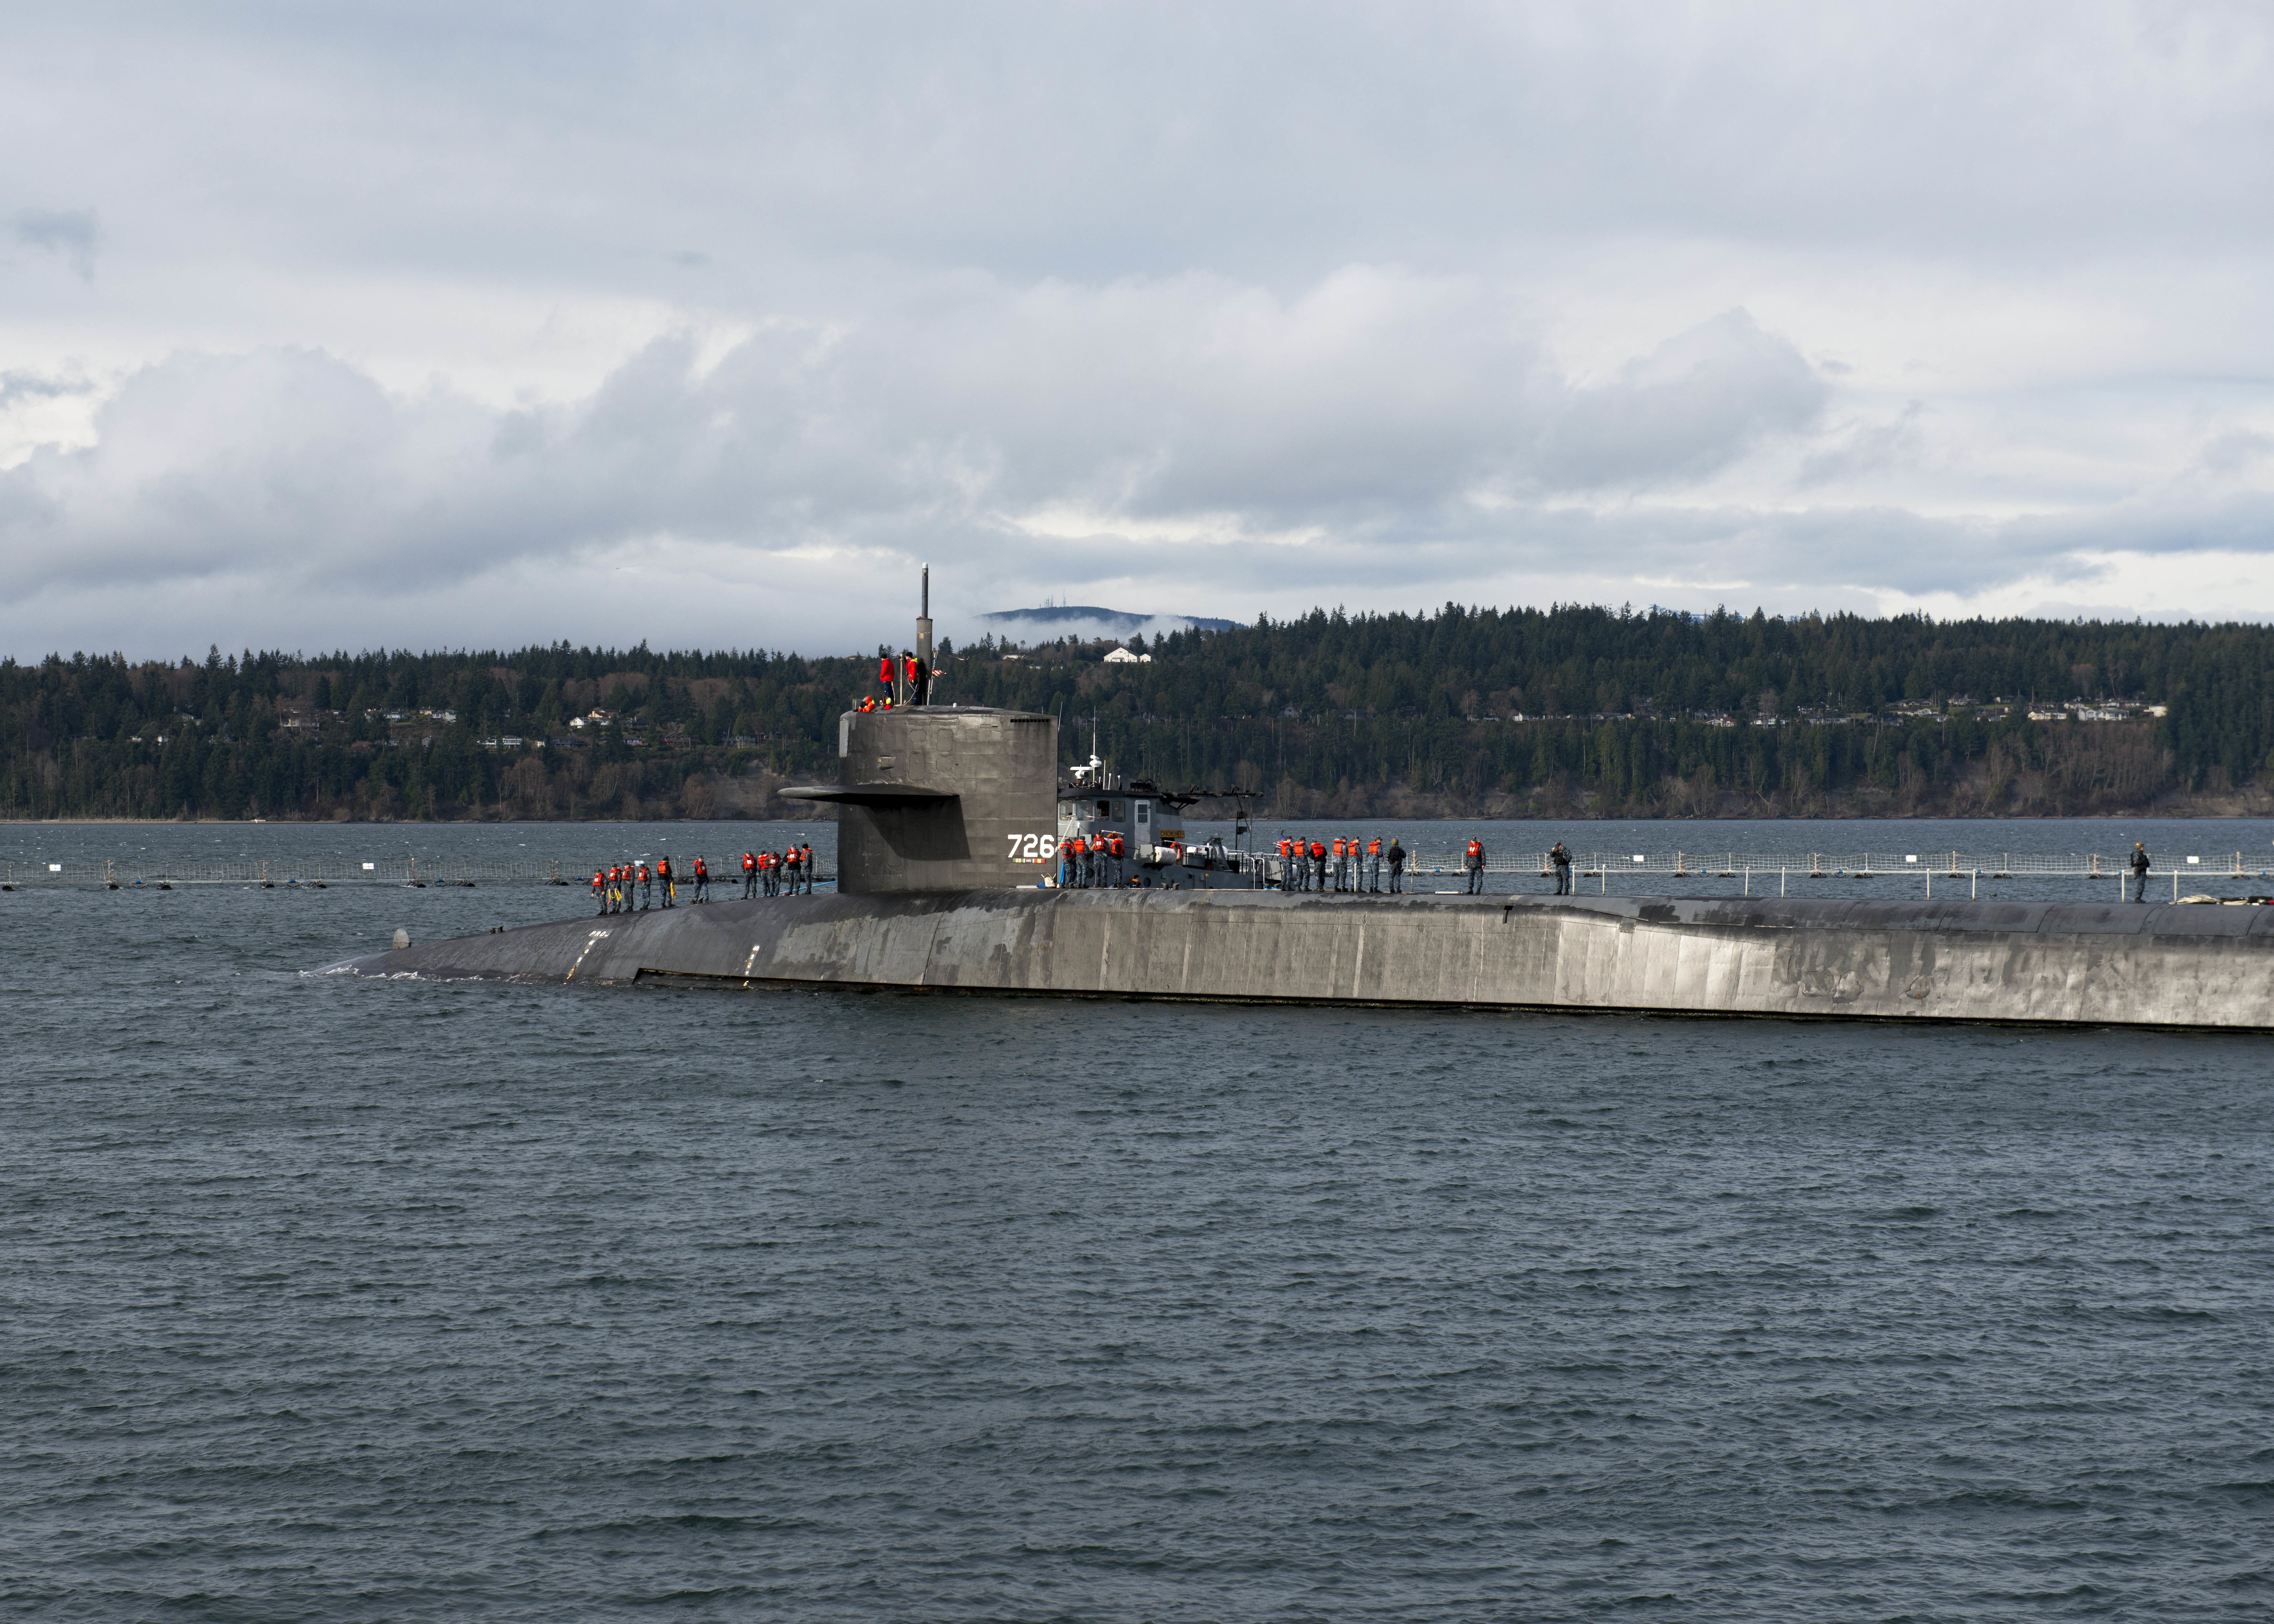 The guided-missile submarine USS Ohio (SSGN 726) arrives at